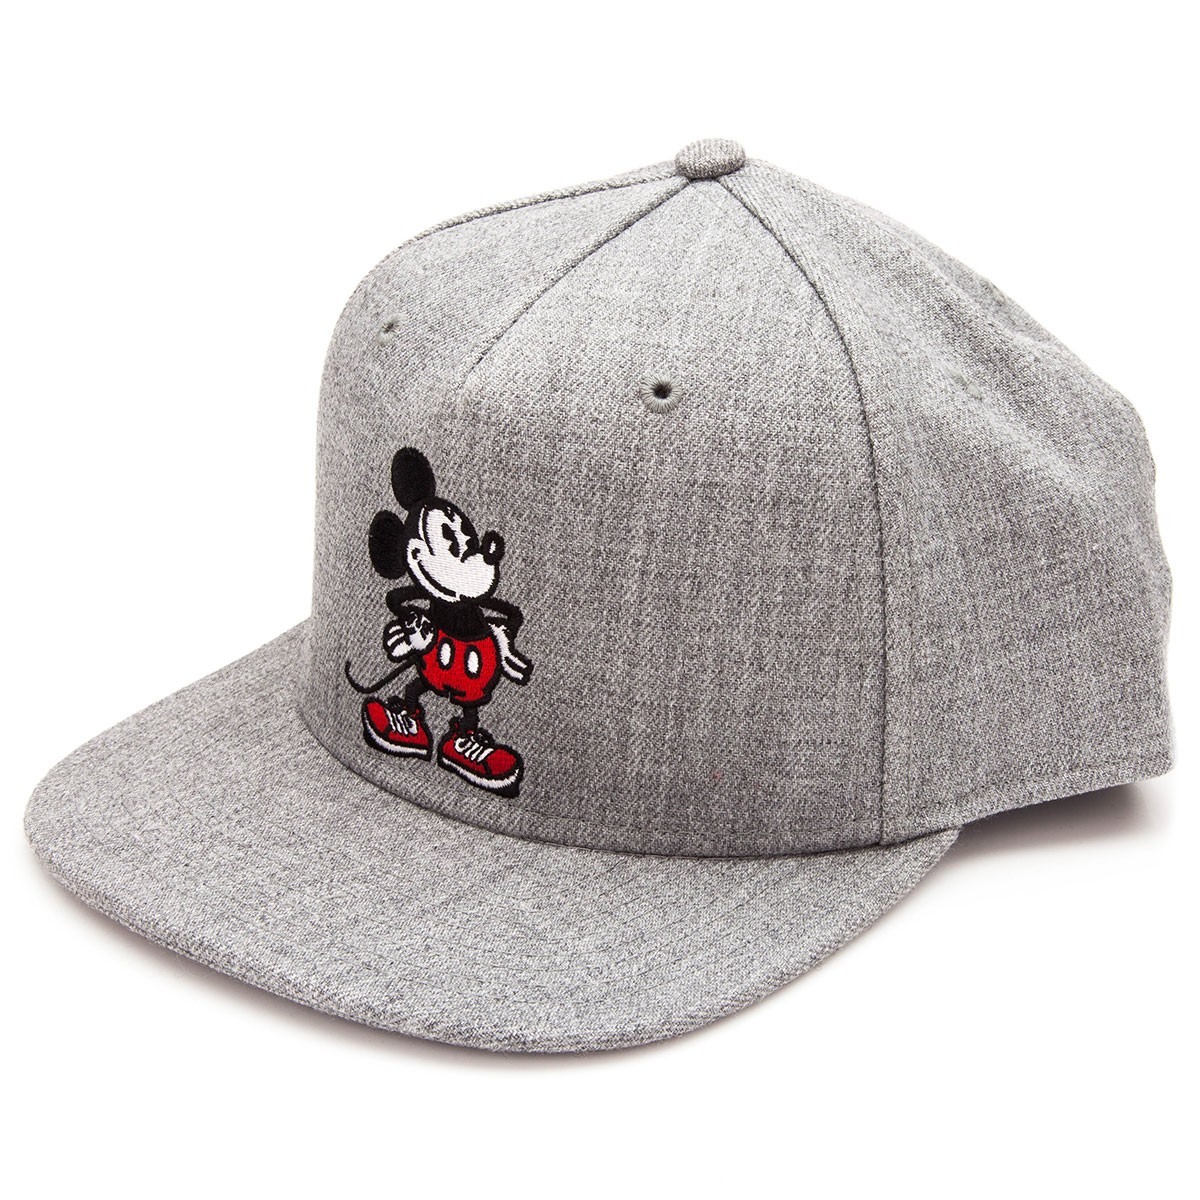 3559455075c Vans Mickey Mouse Snapback Hat - Mickey Mouse